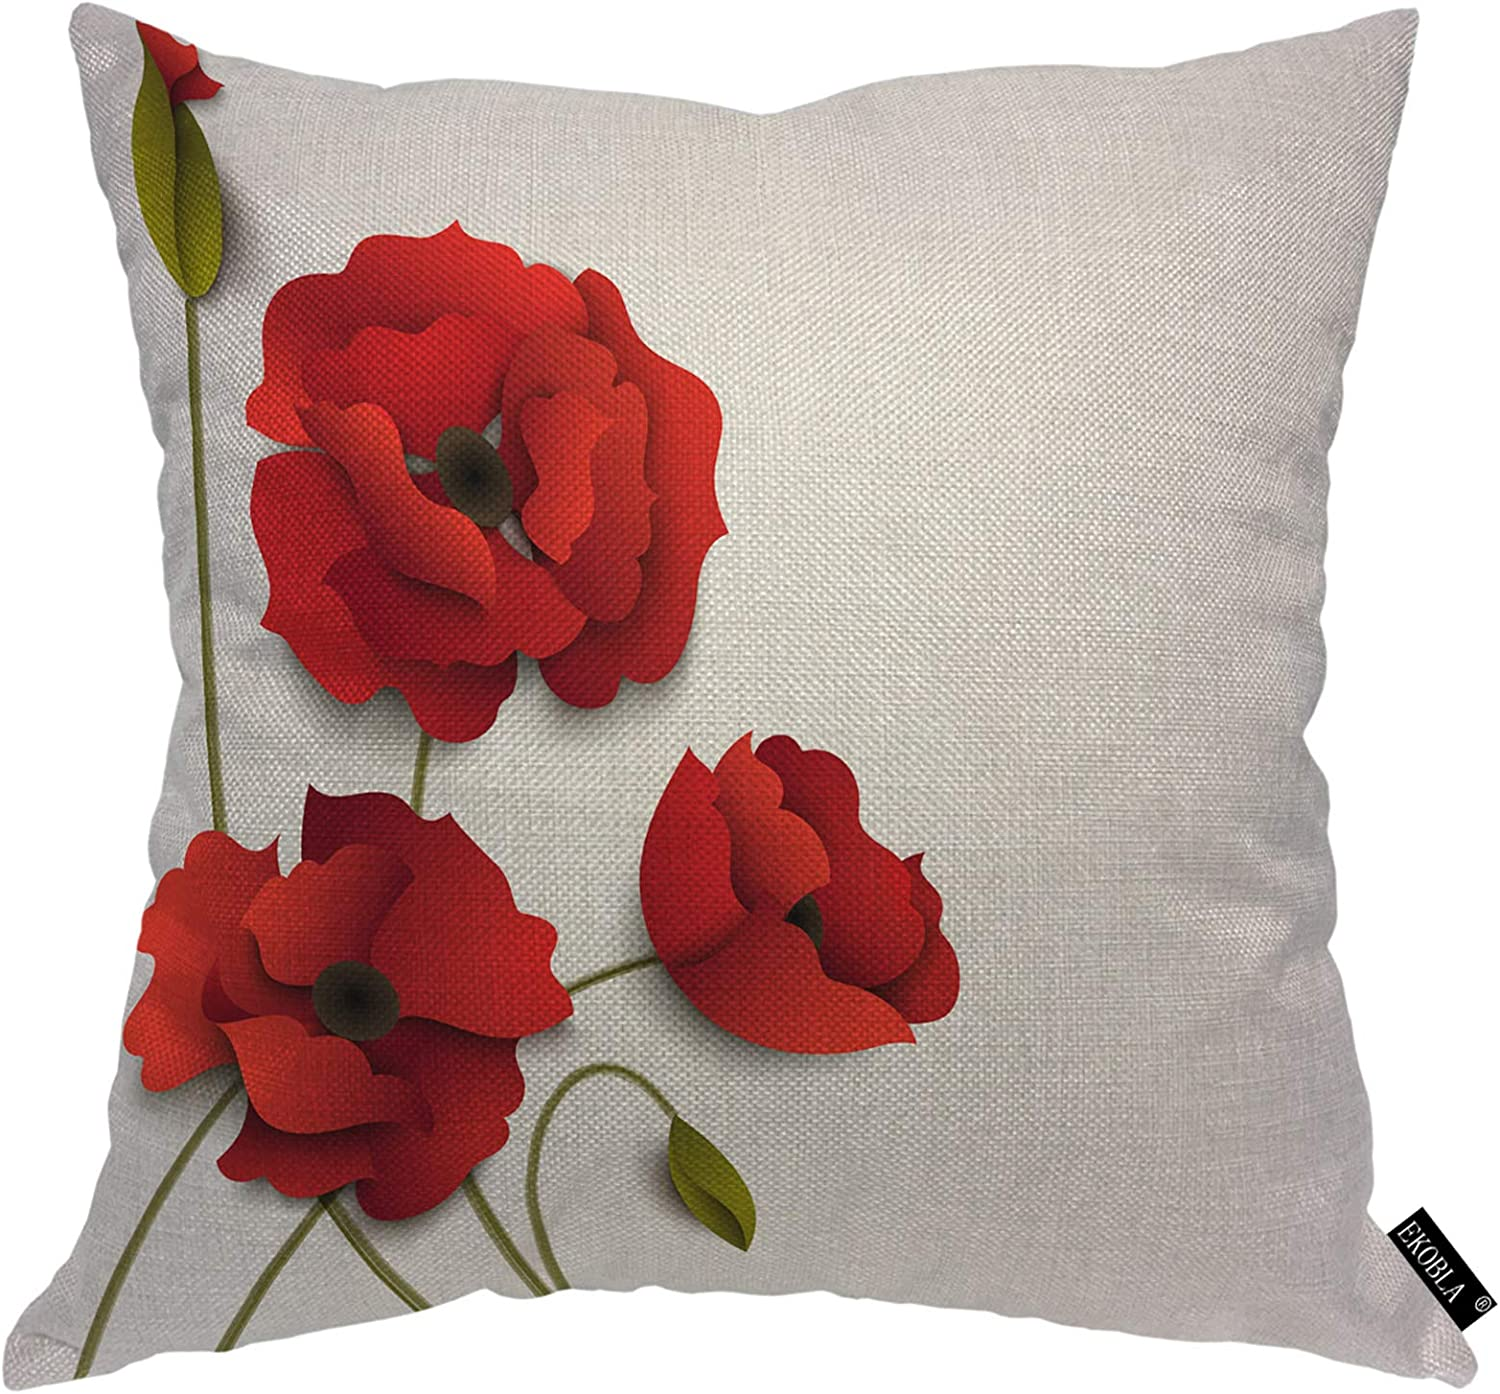 EKOBLA Red Poppy Throw Pillow Cover Floral 3D Blooming Leaves Trendy Romantic Spring Summer Valentine Cozy Square Cushion Case for Men Women Boys Girls Room Home Decor Cotton Linen 18x18 Inch